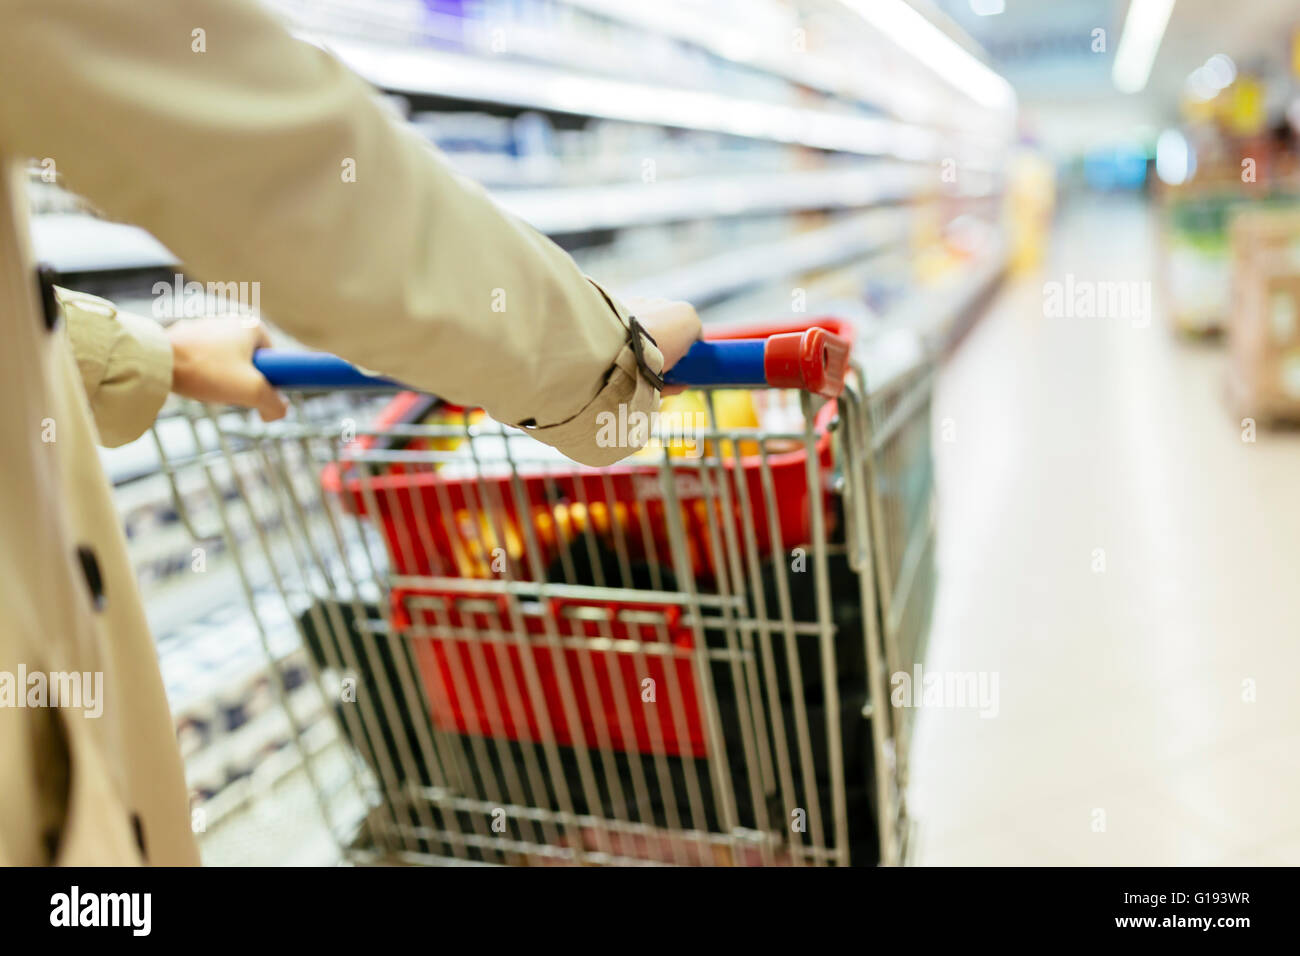 Woman pushing shopping trolley in supermarket - Stock Image